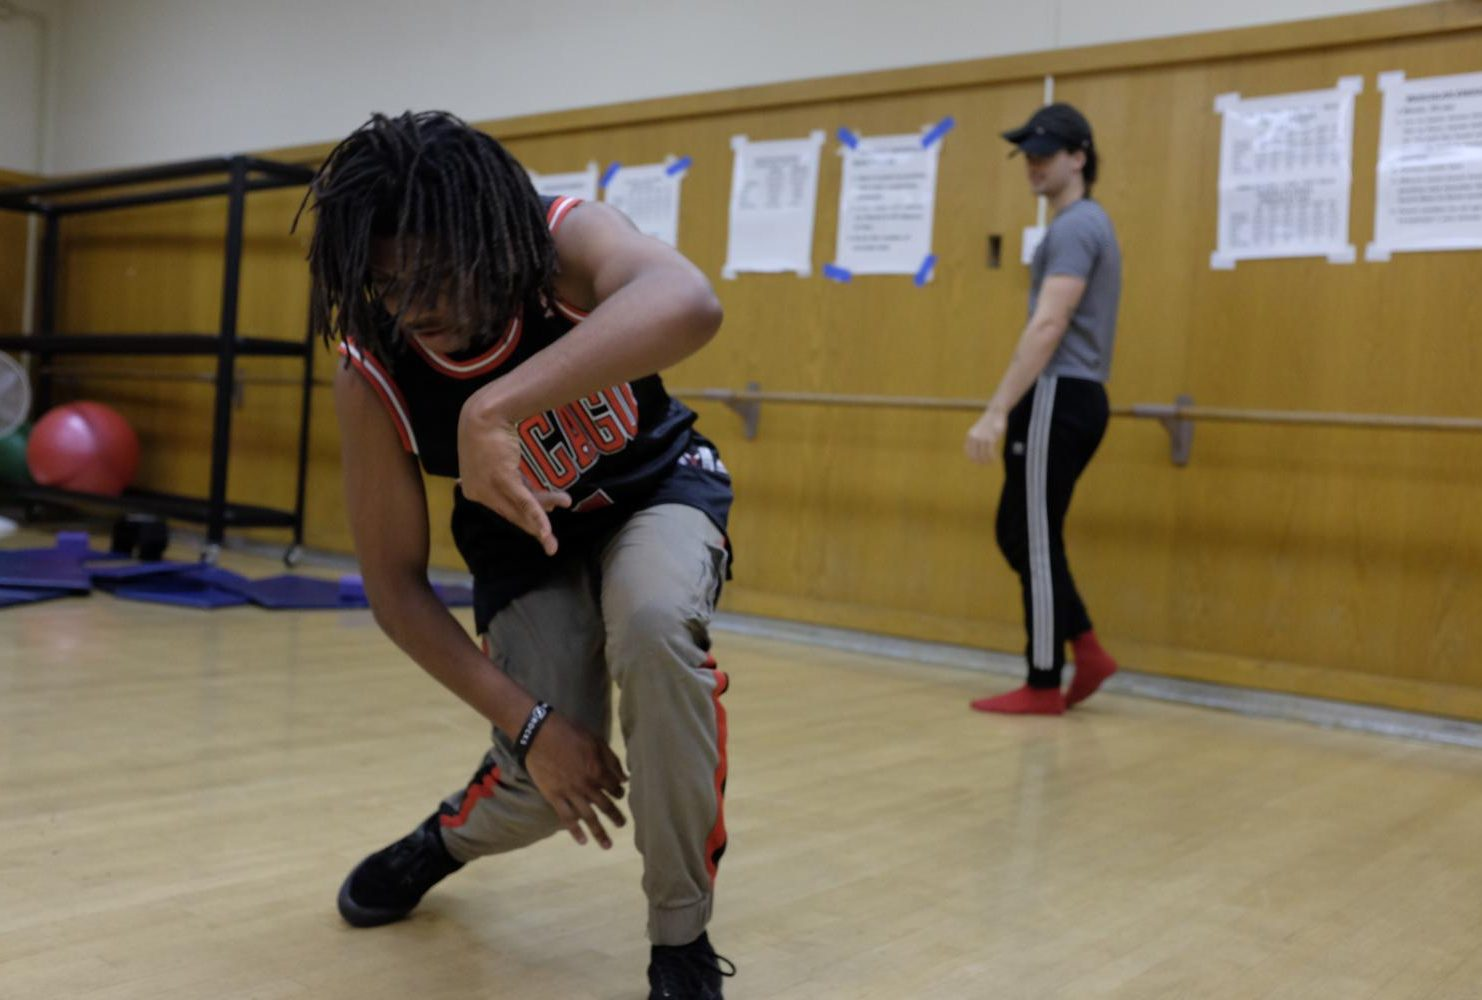 Latraye Allen, dance major, practices hip-hop dance moves in the second dance studio at American River College on Feb. 6, 2019. (Photo by Patrick Hyun Wilson)